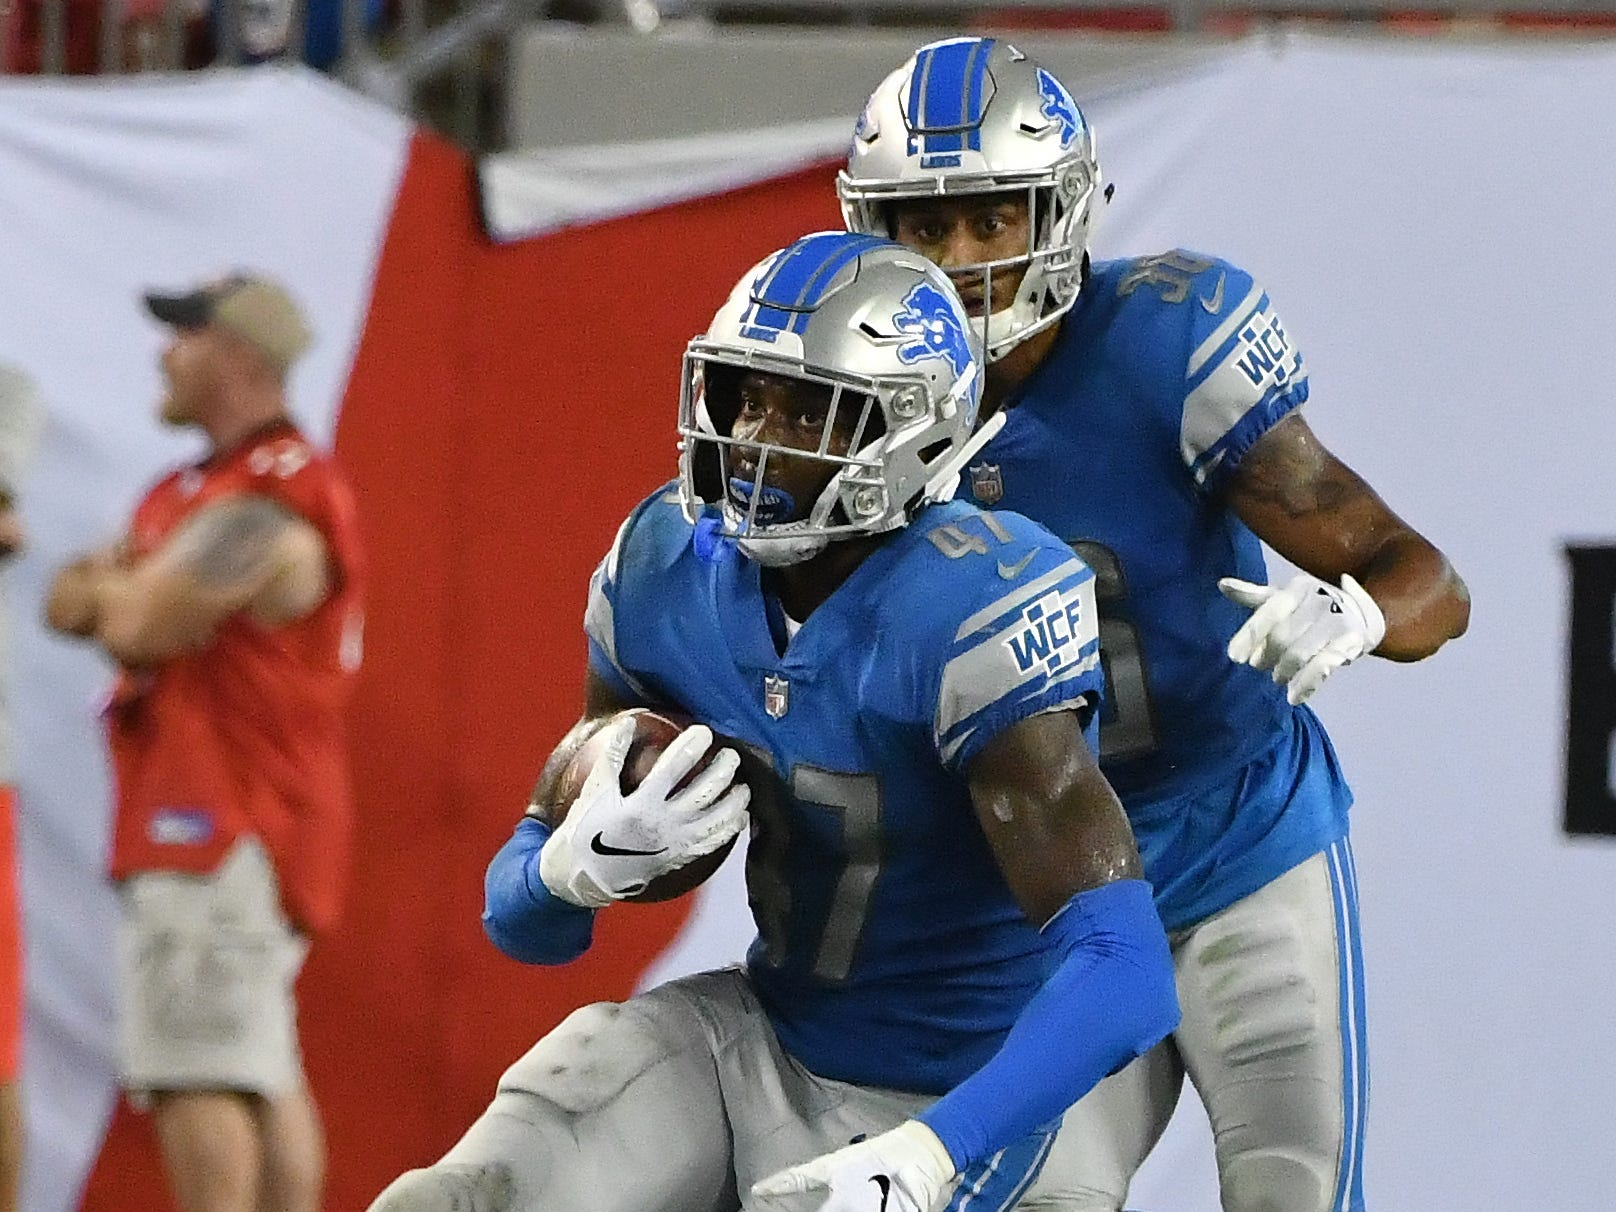 Lions' Tracy Walker intercepts Buccaneers quarterback Austin Allen pass to end the game with a Lions victory, 33-30.